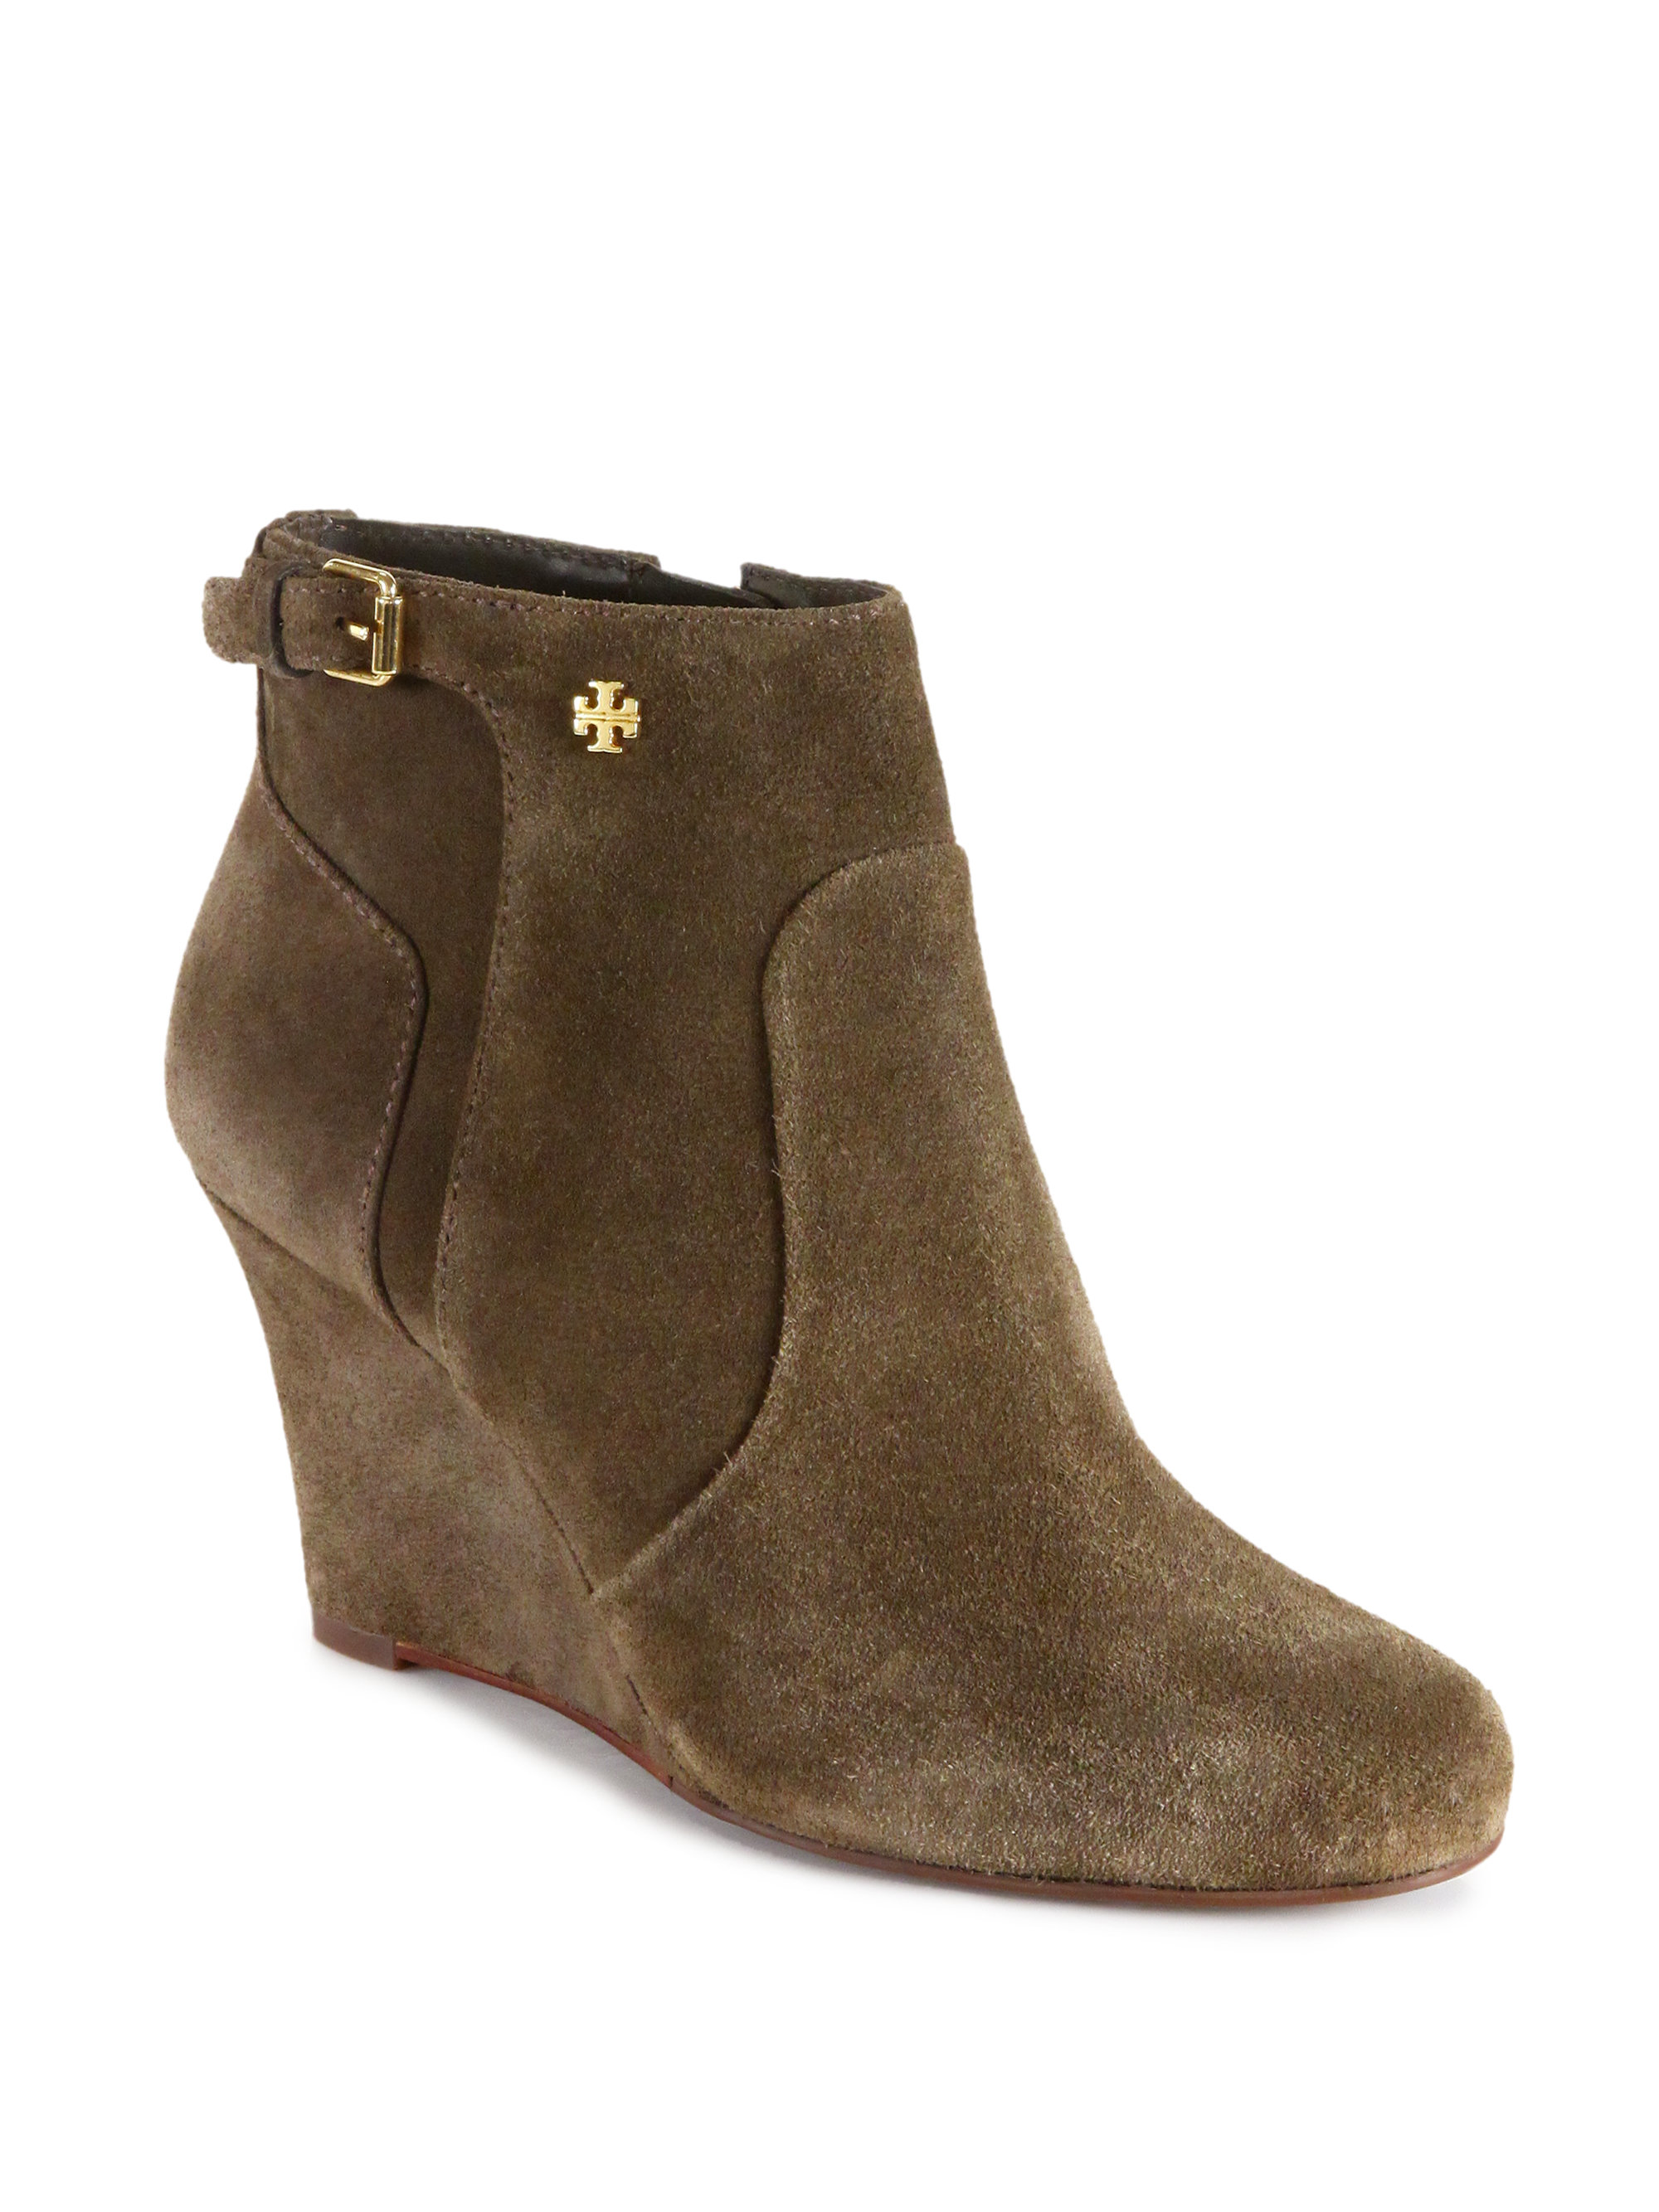 12d81f93fd3 Lyst - Tory Burch Milan Suede Wedge Ankle Boots in Natural